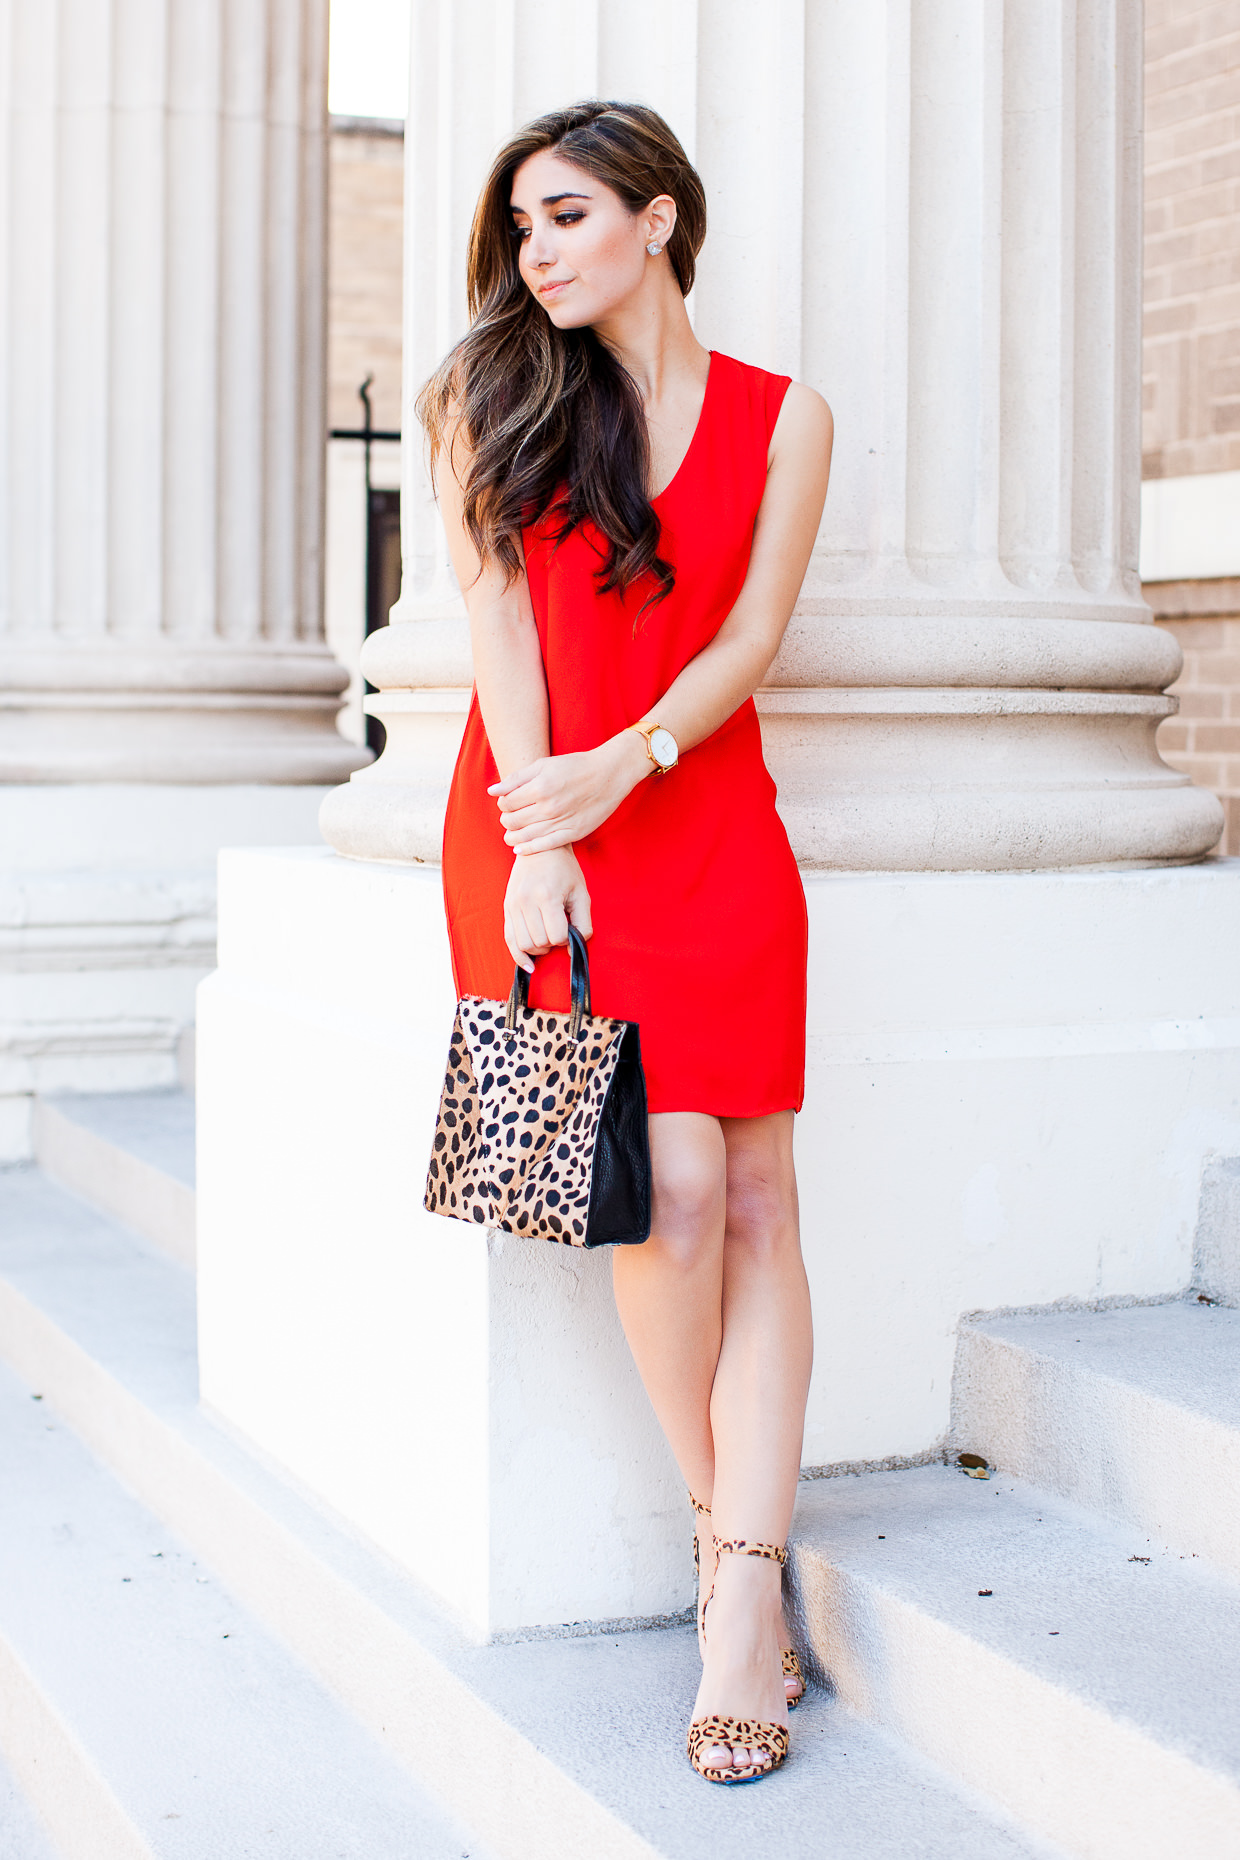 valentine's date outfit ideas